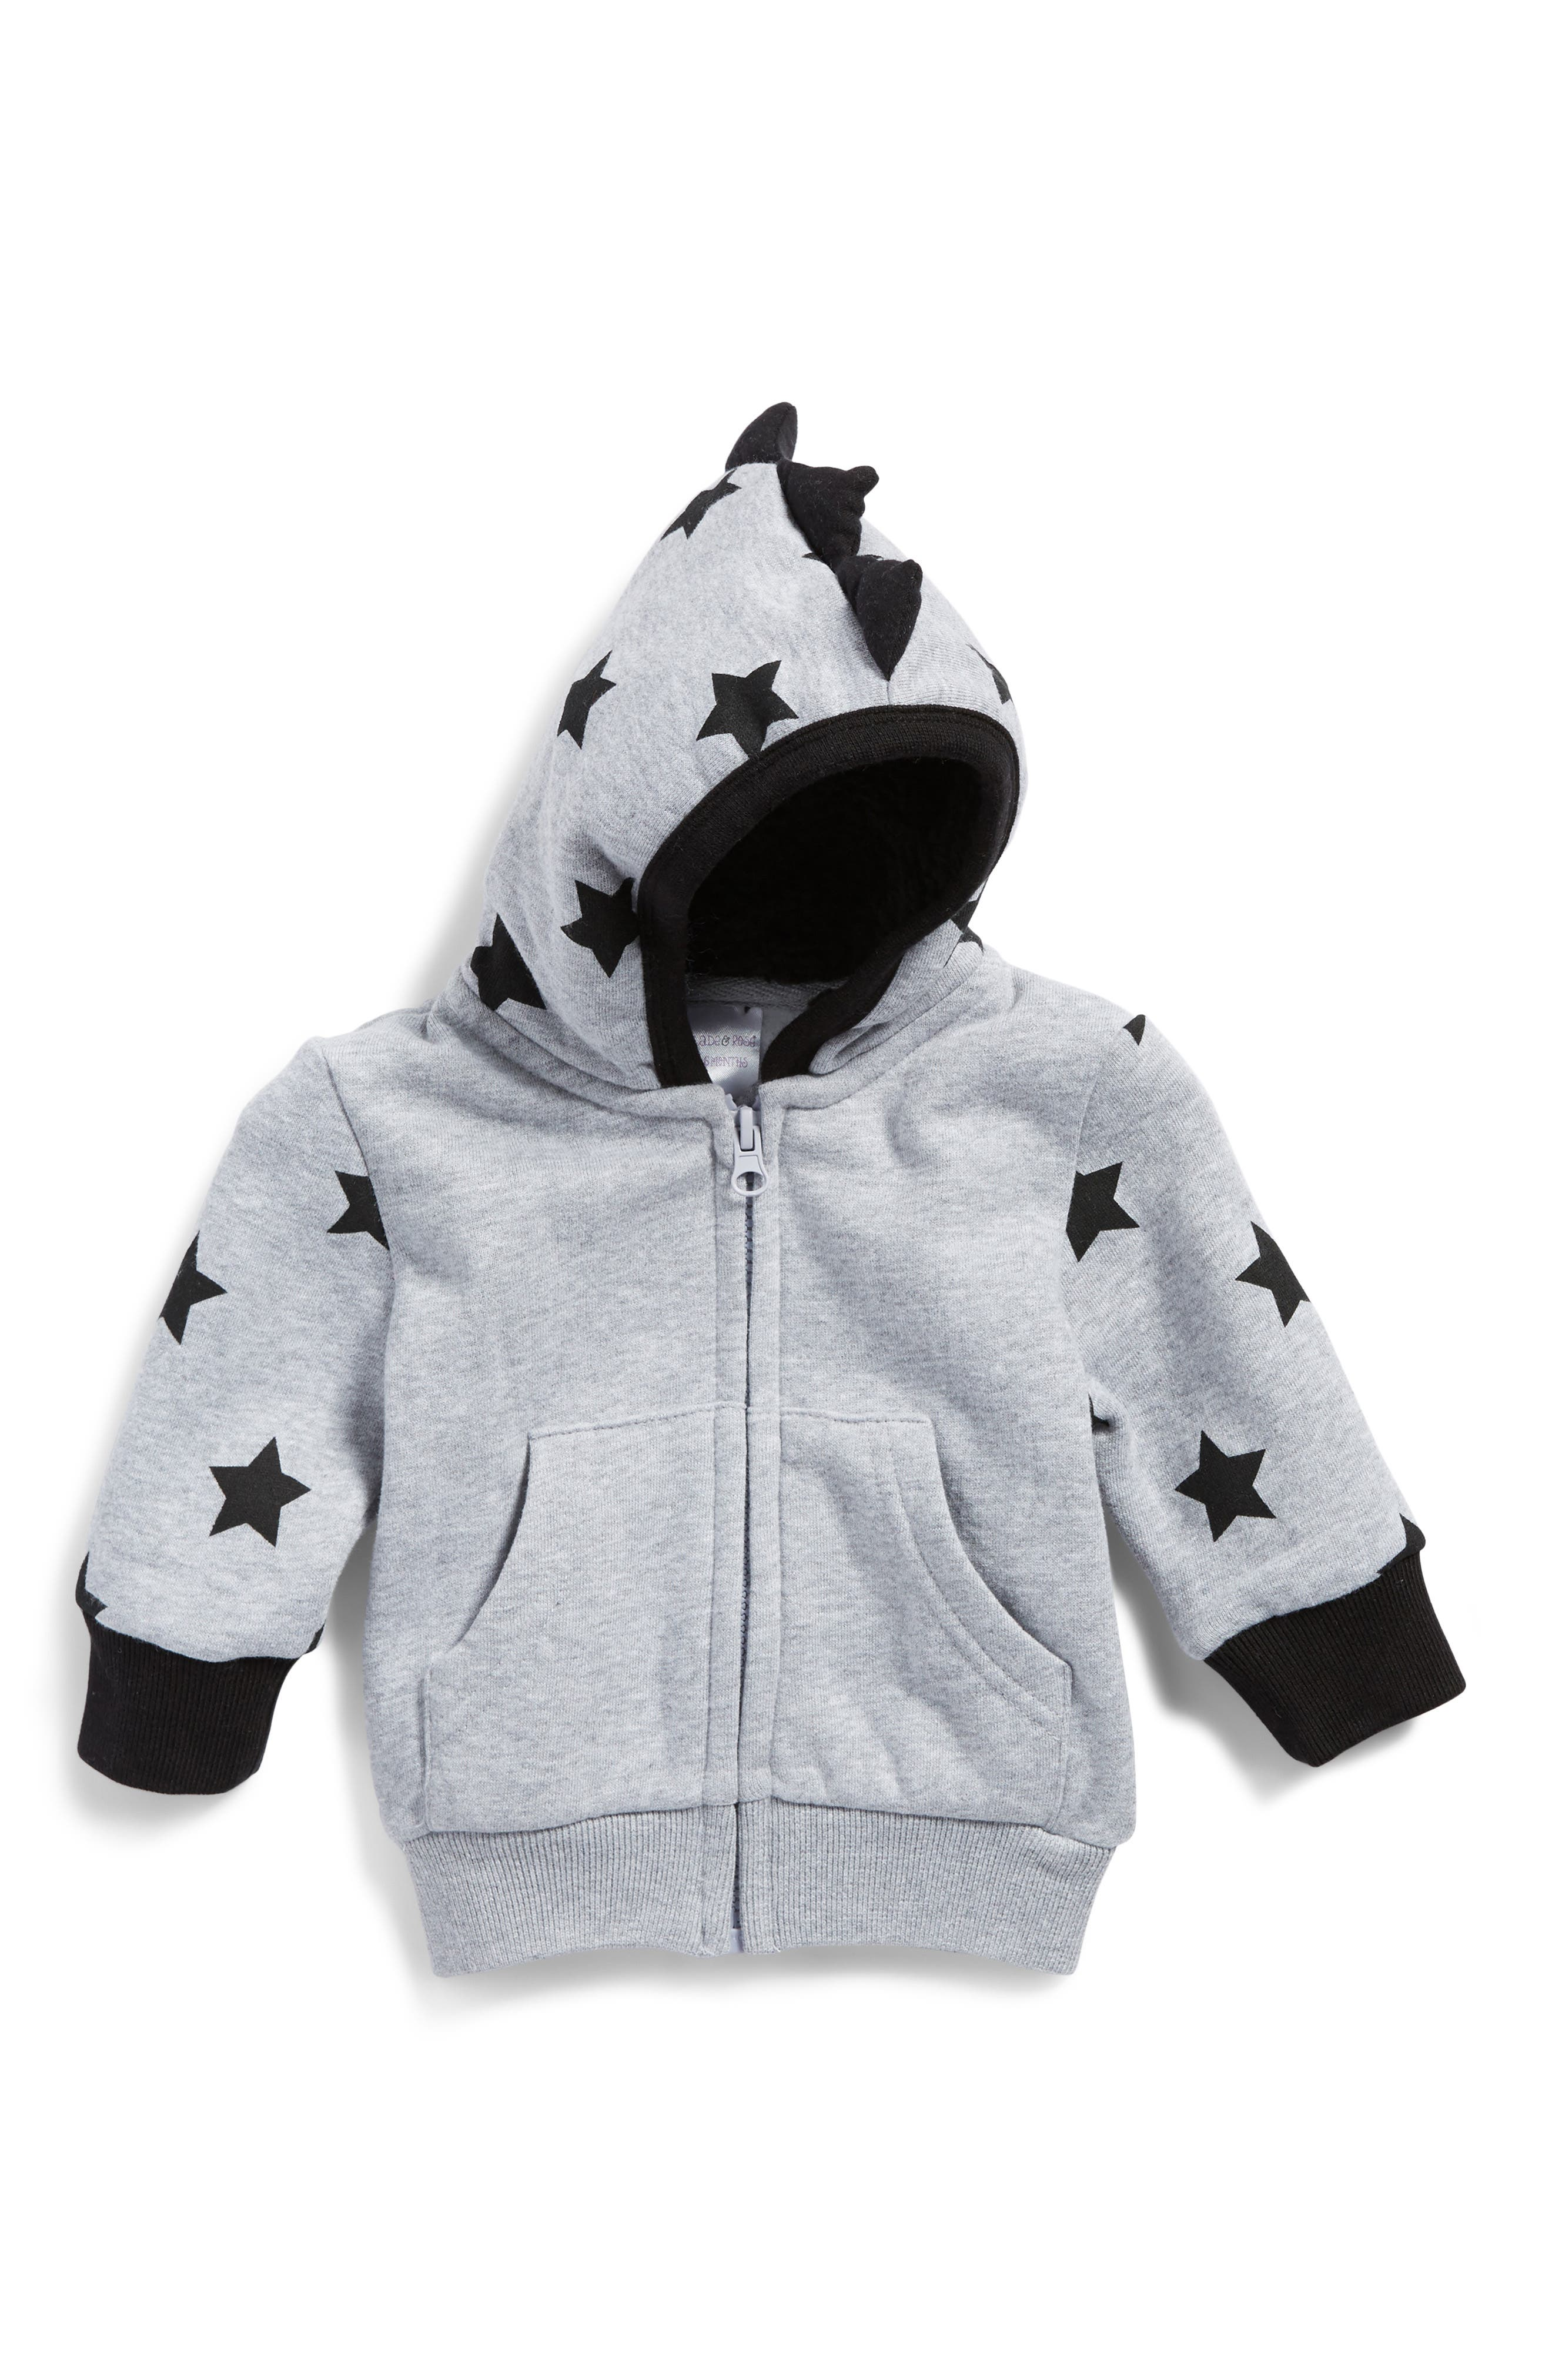 Star Print Hoodie,                             Main thumbnail 1, color,                             030